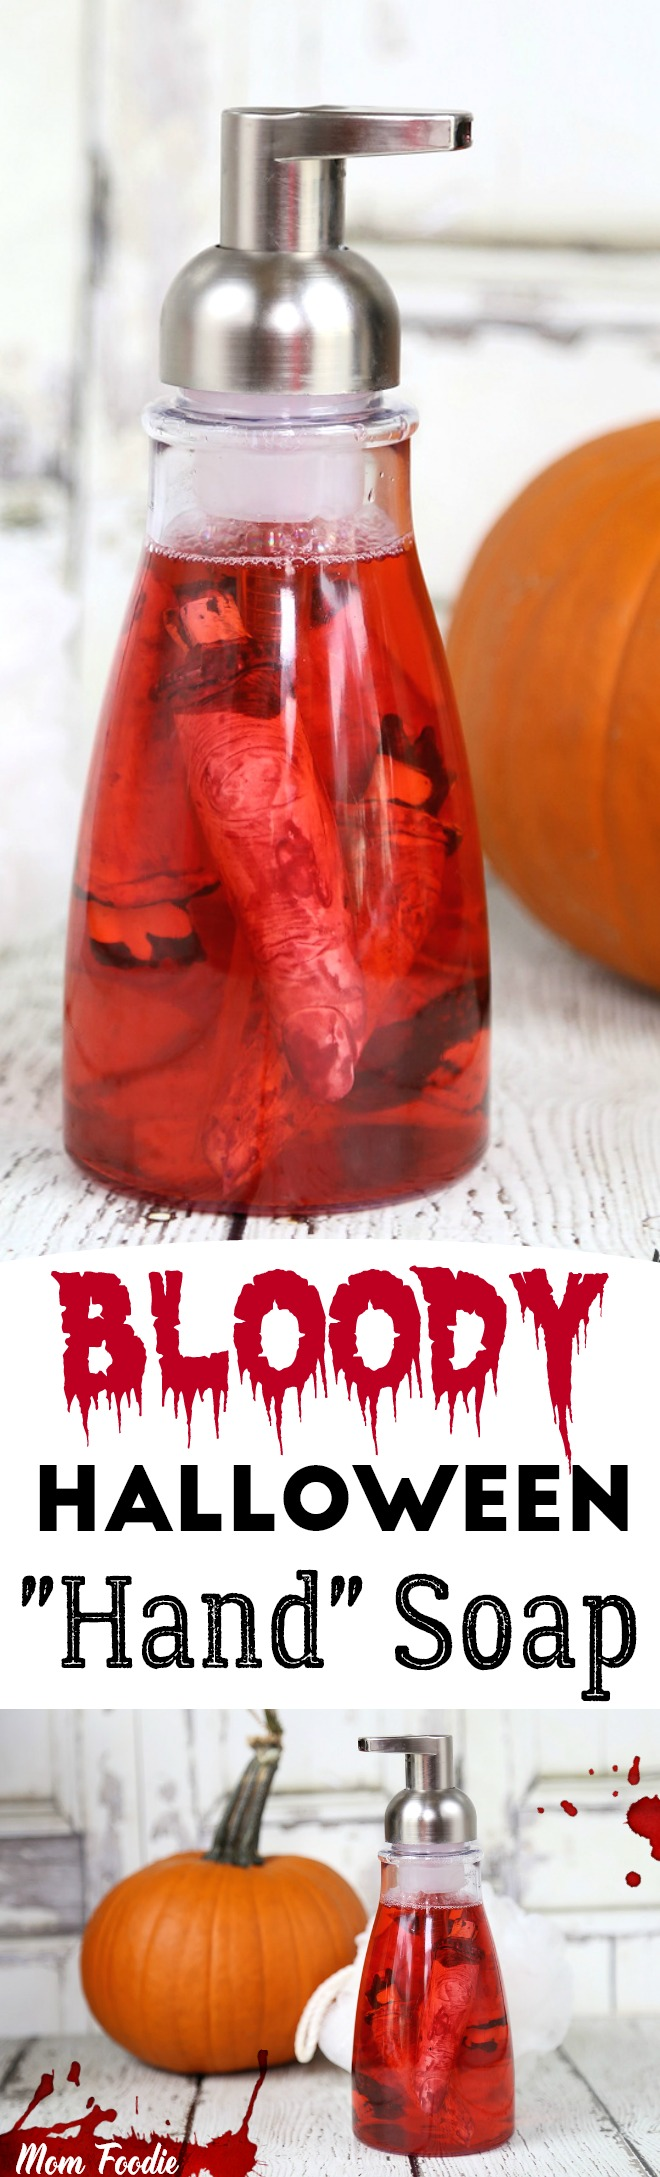 Bloody Halloween Hand Soap - Easy DIY Halloween Craft prop project, foaming hand soap with severed fingers